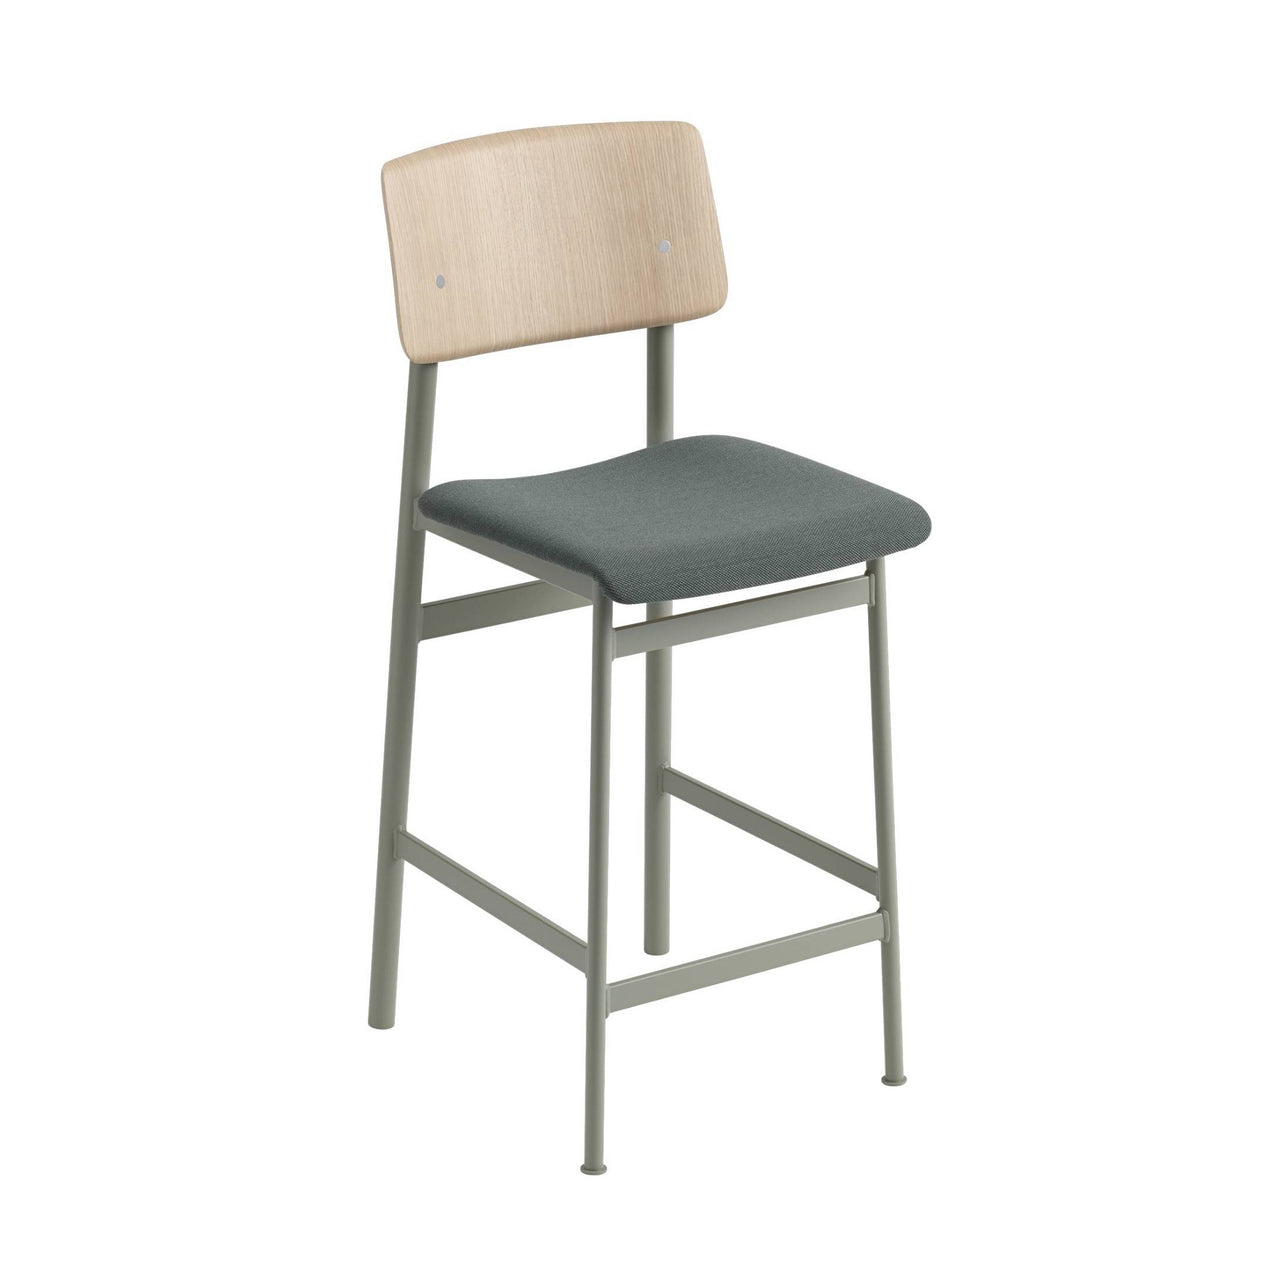 Loft Counter Stool Upholstered: Dusty Green Base + Oak